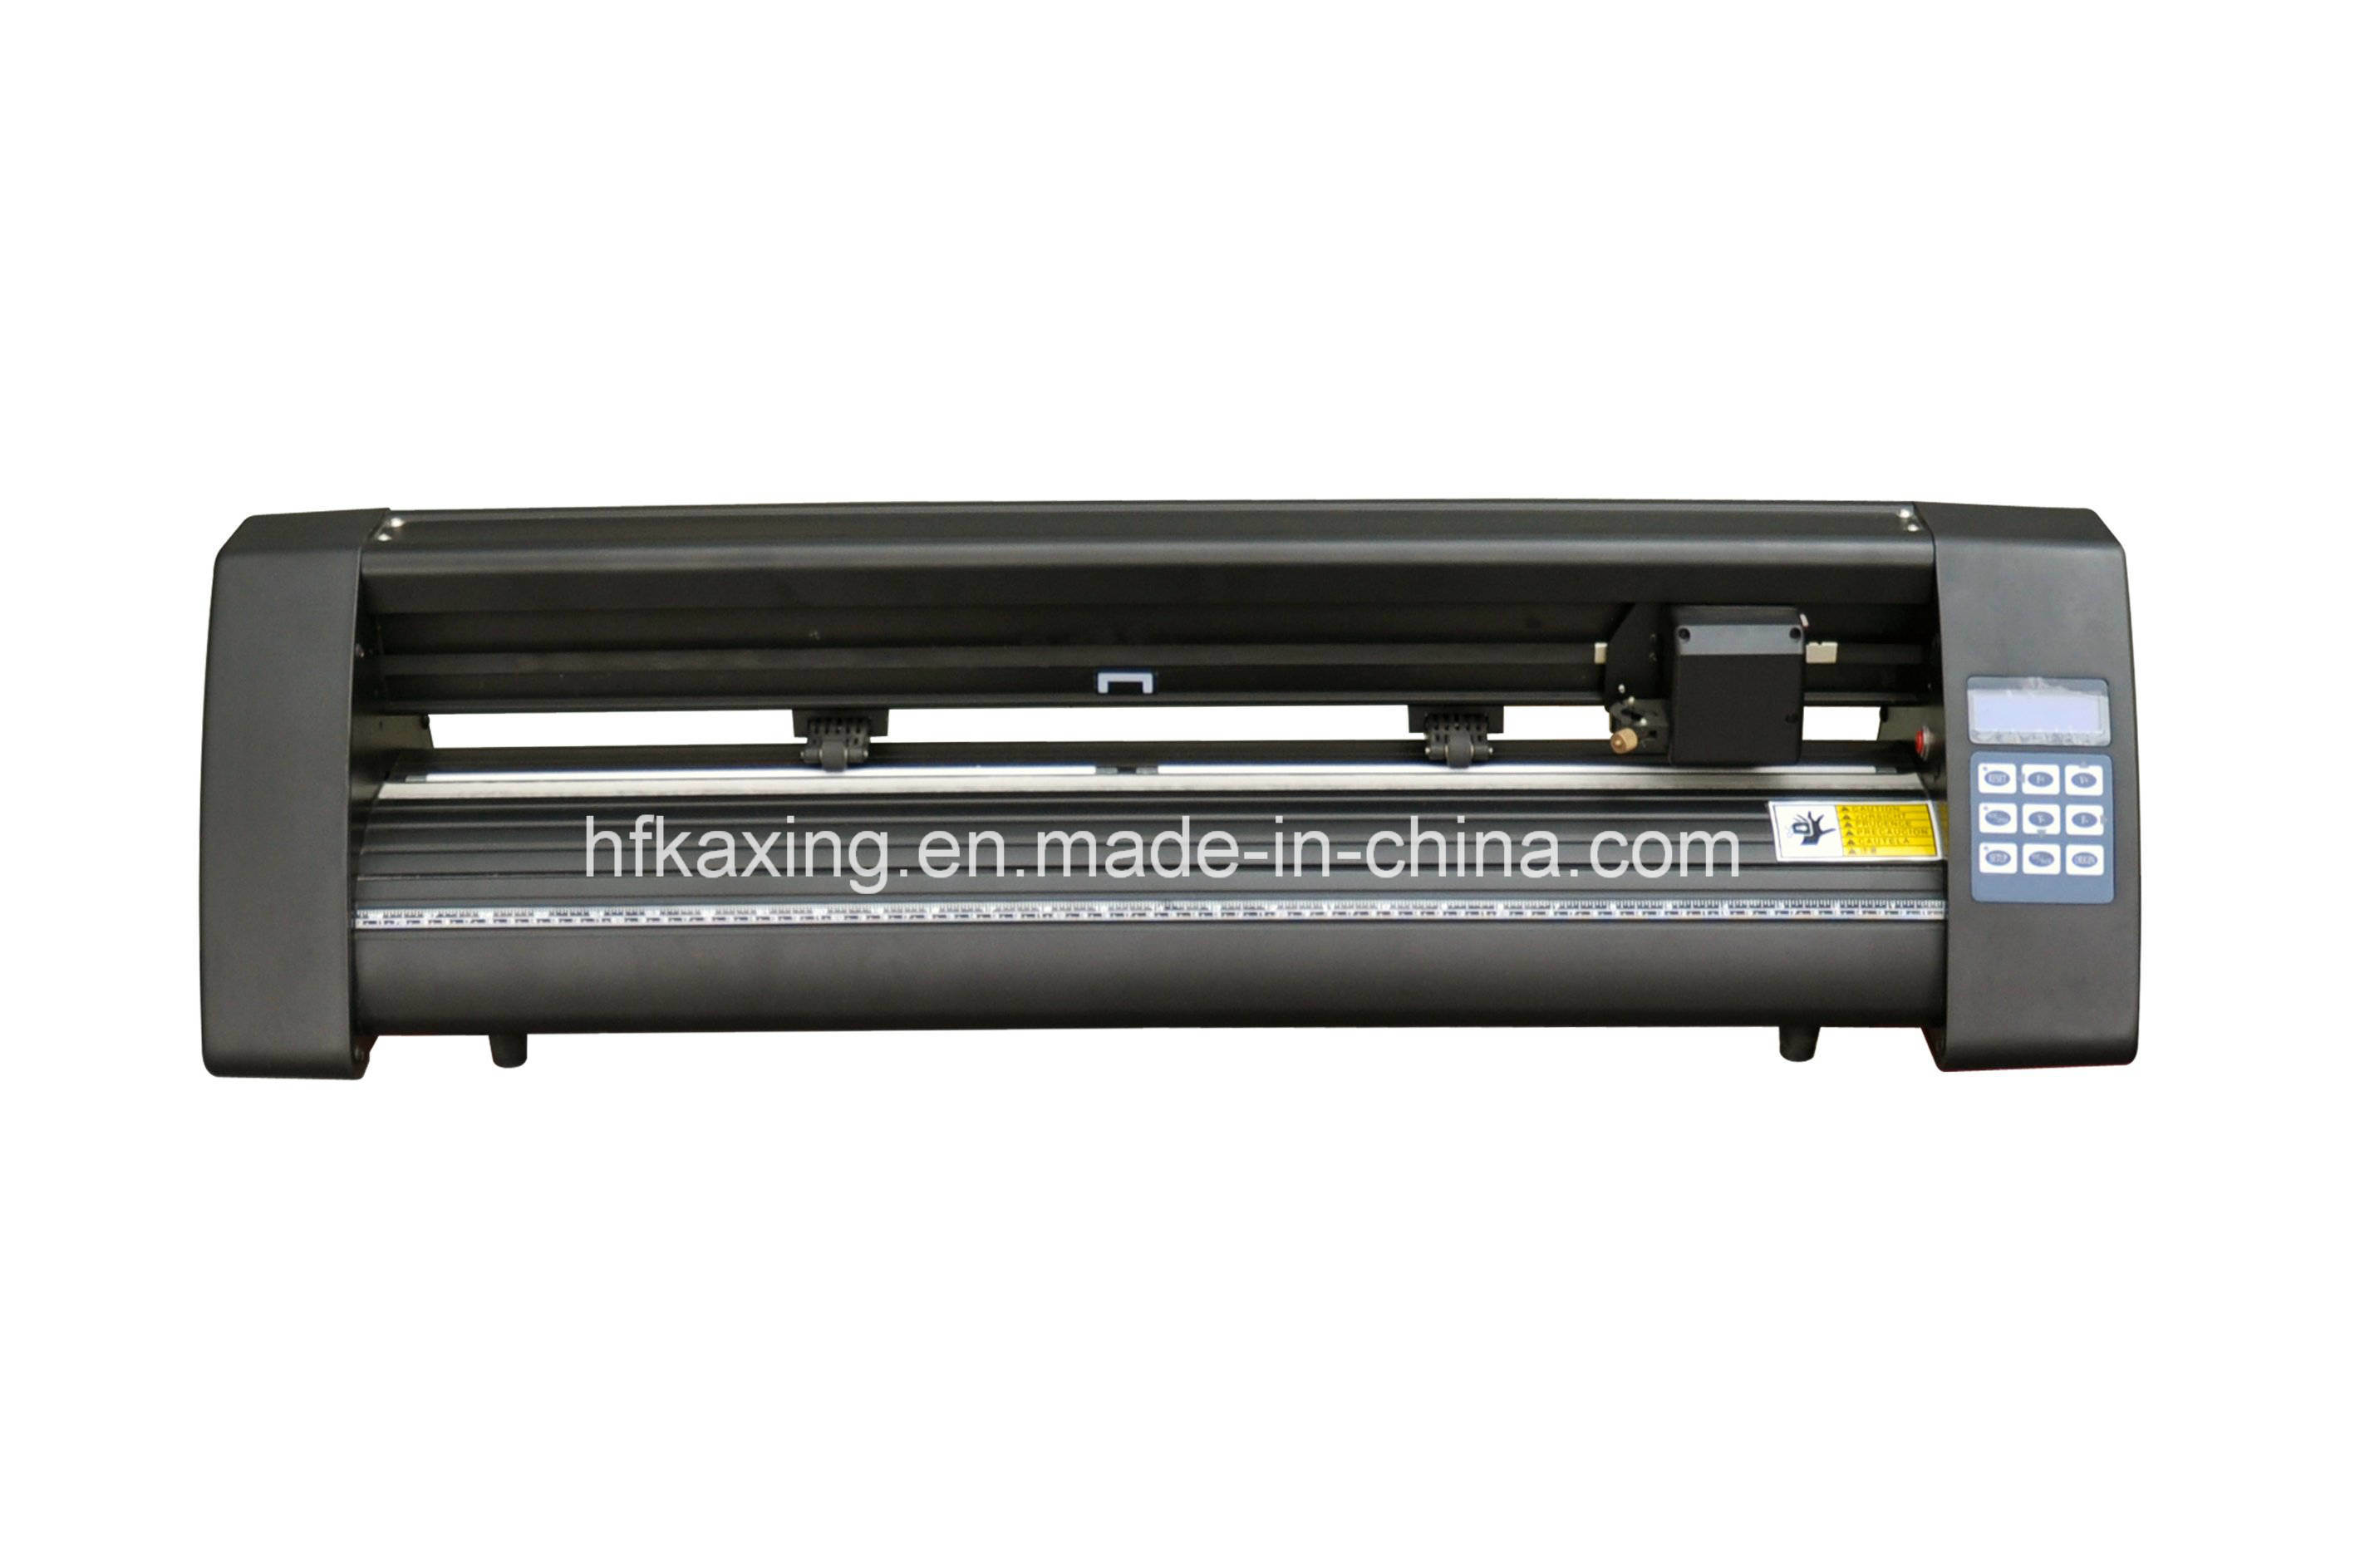 China ce 720mm 28 inch most competitive vinyl sticker cutter plotter china label cutter plotter wall sticker cutter plotter